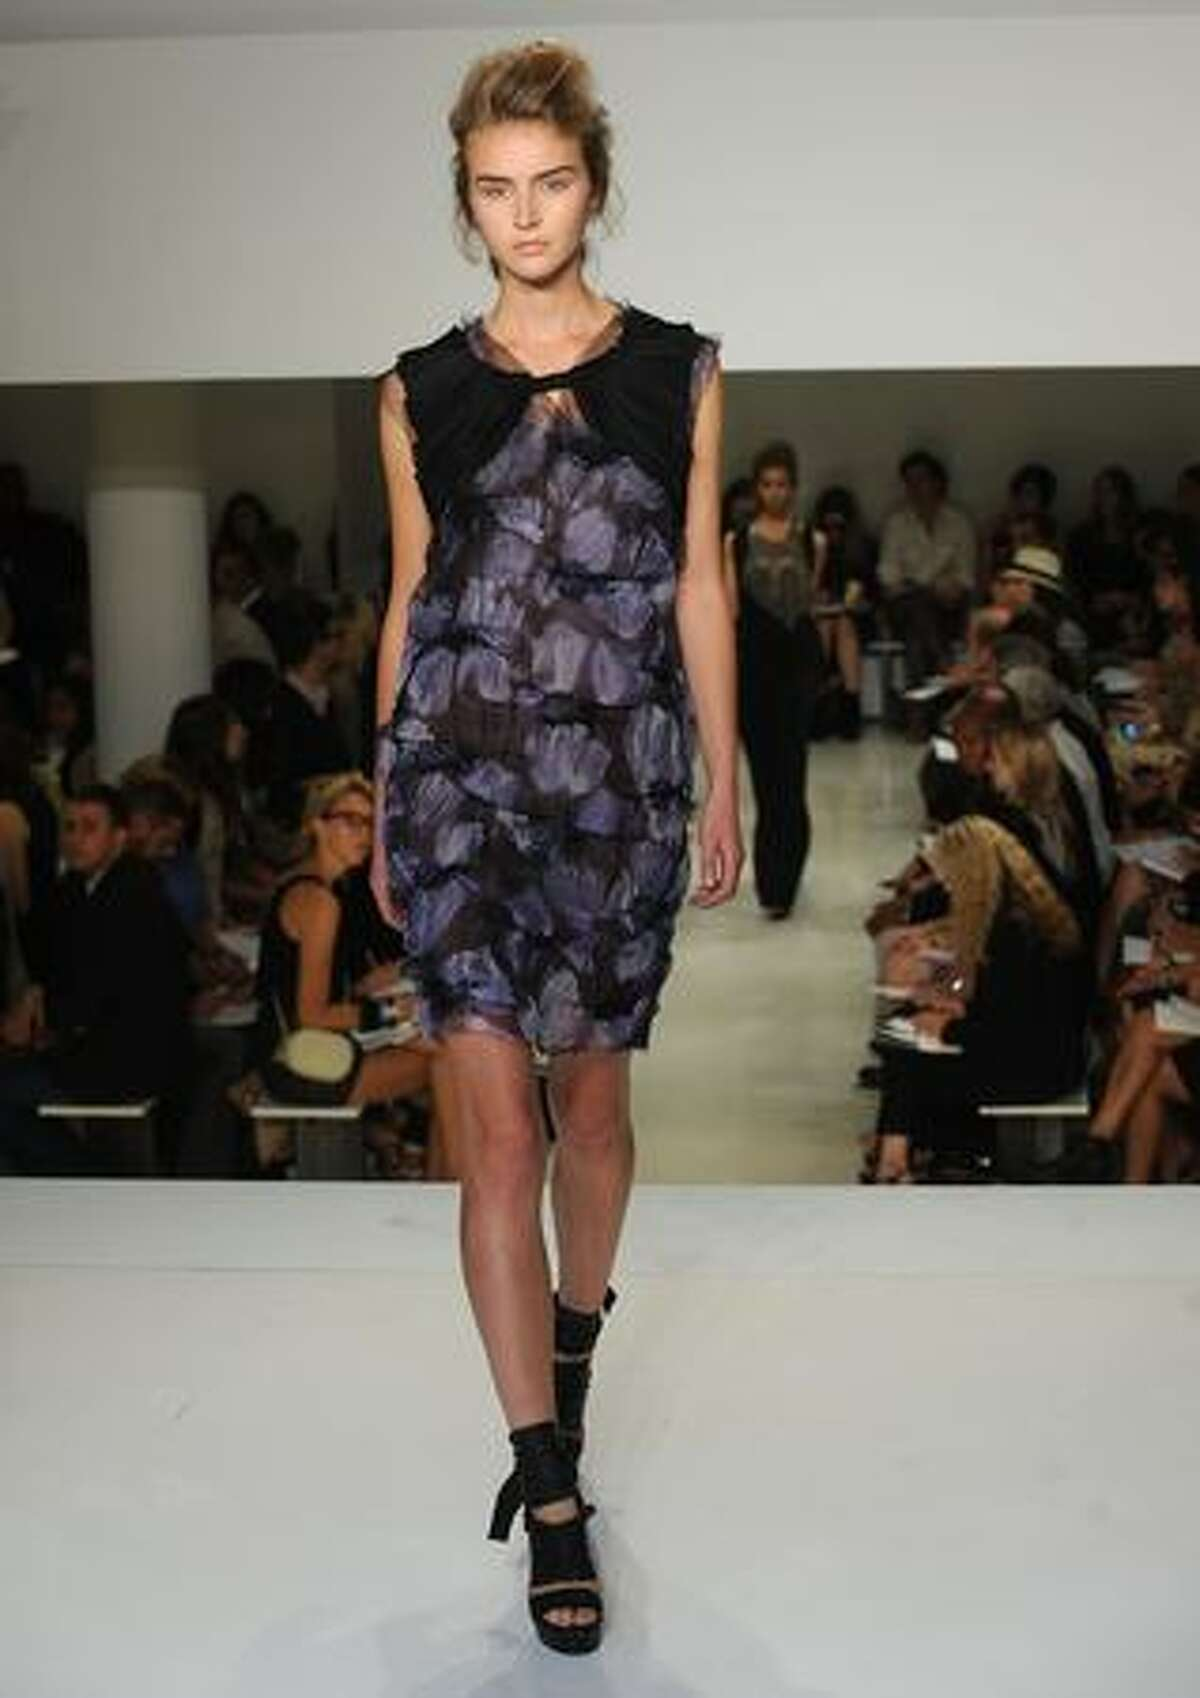 A model walks the runway at Vera Wang Spring 2010 fashion show at 158 Mercer Street in New York City.